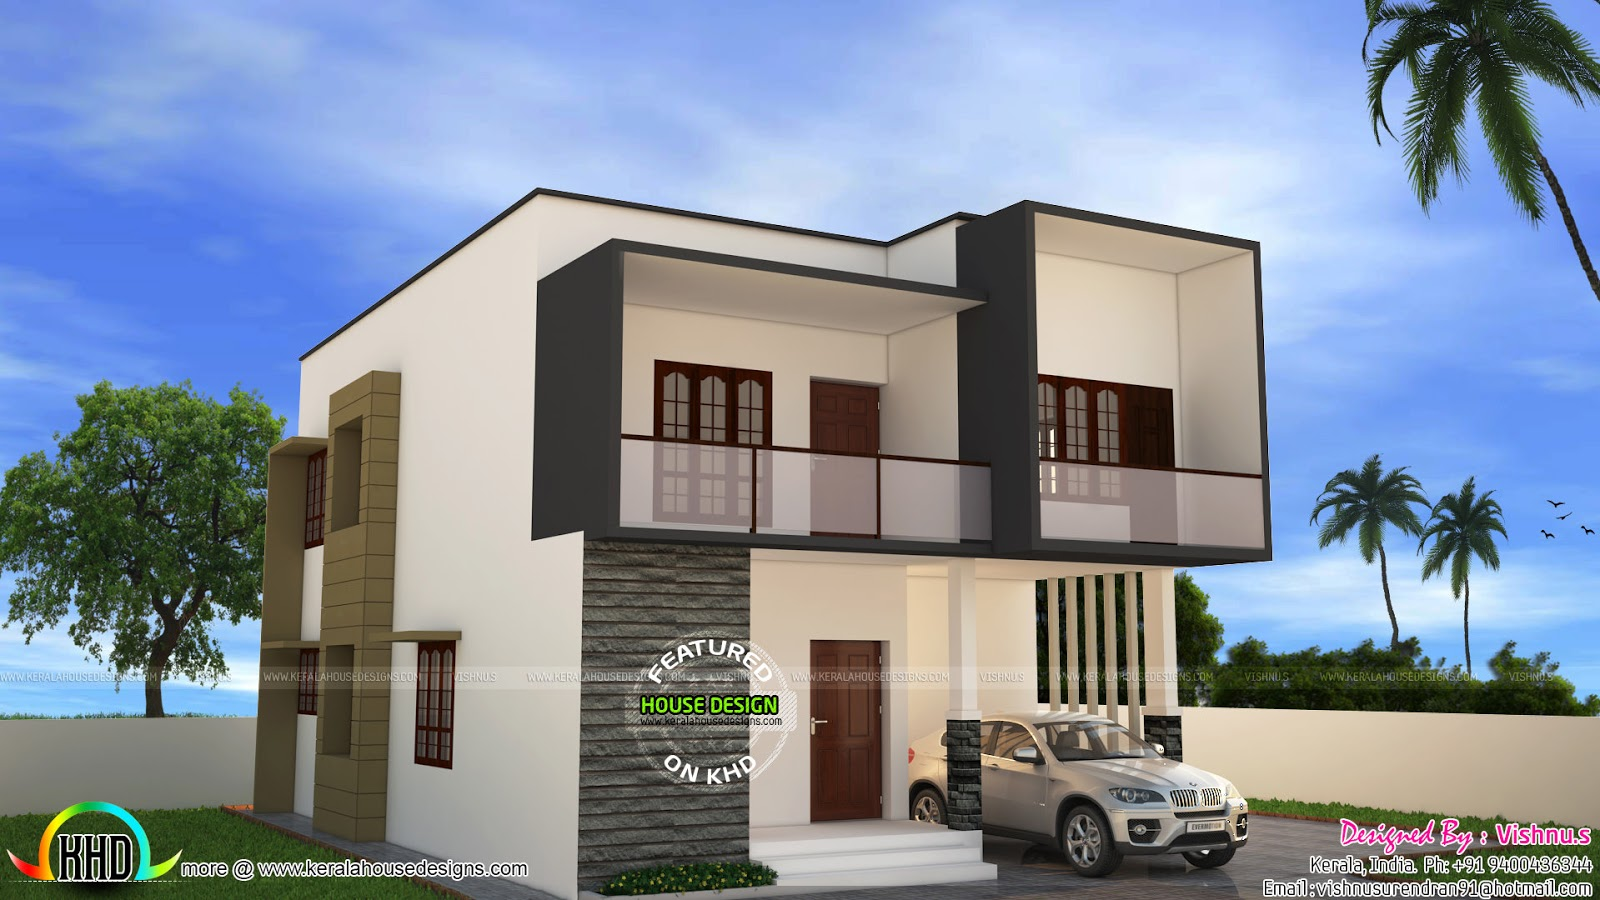 Simple modern house by Vishnu S - Kerala home design and ...